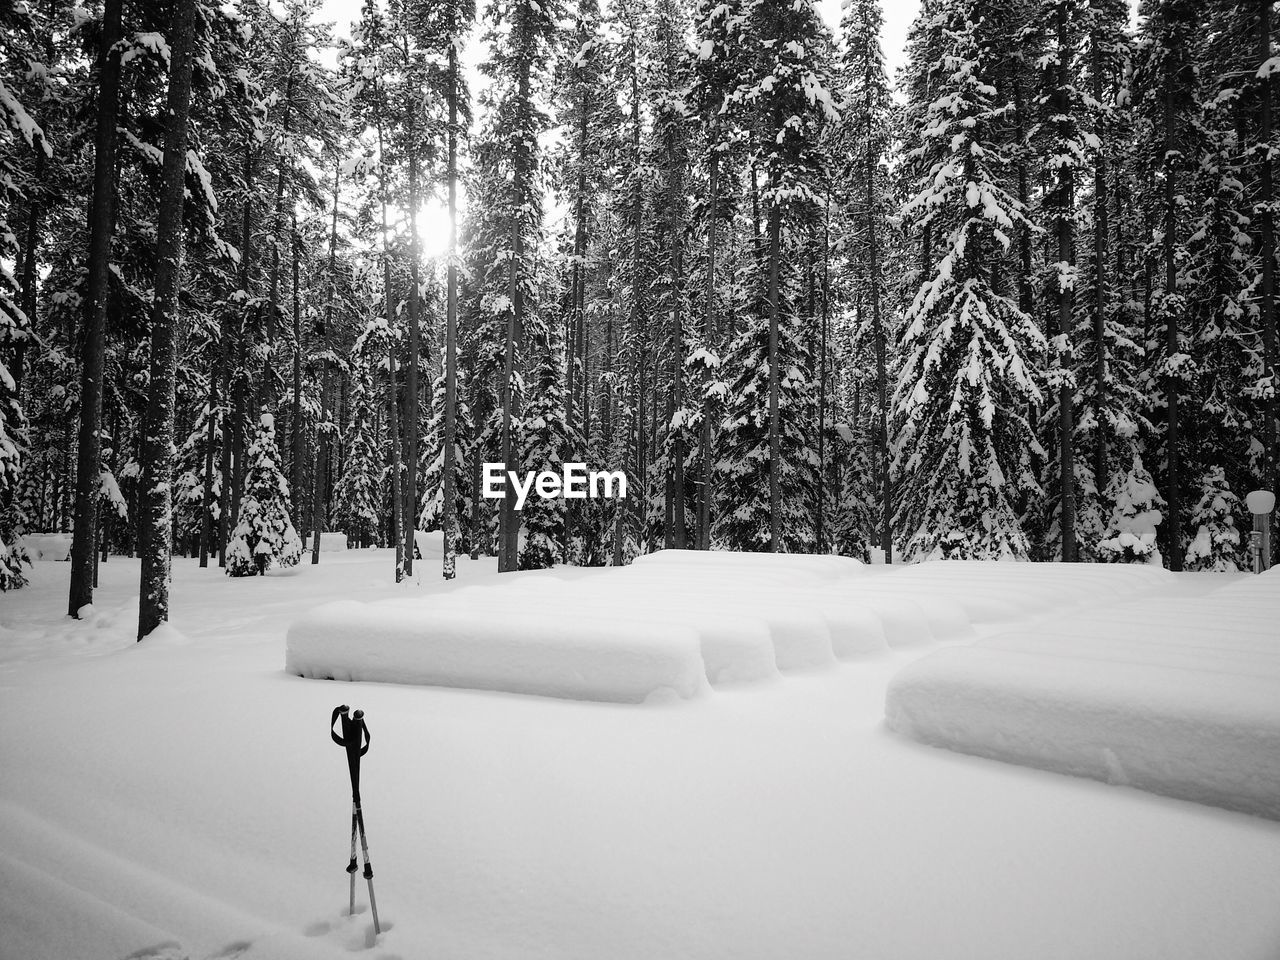 Ski Poles In Snow With Trees In Background